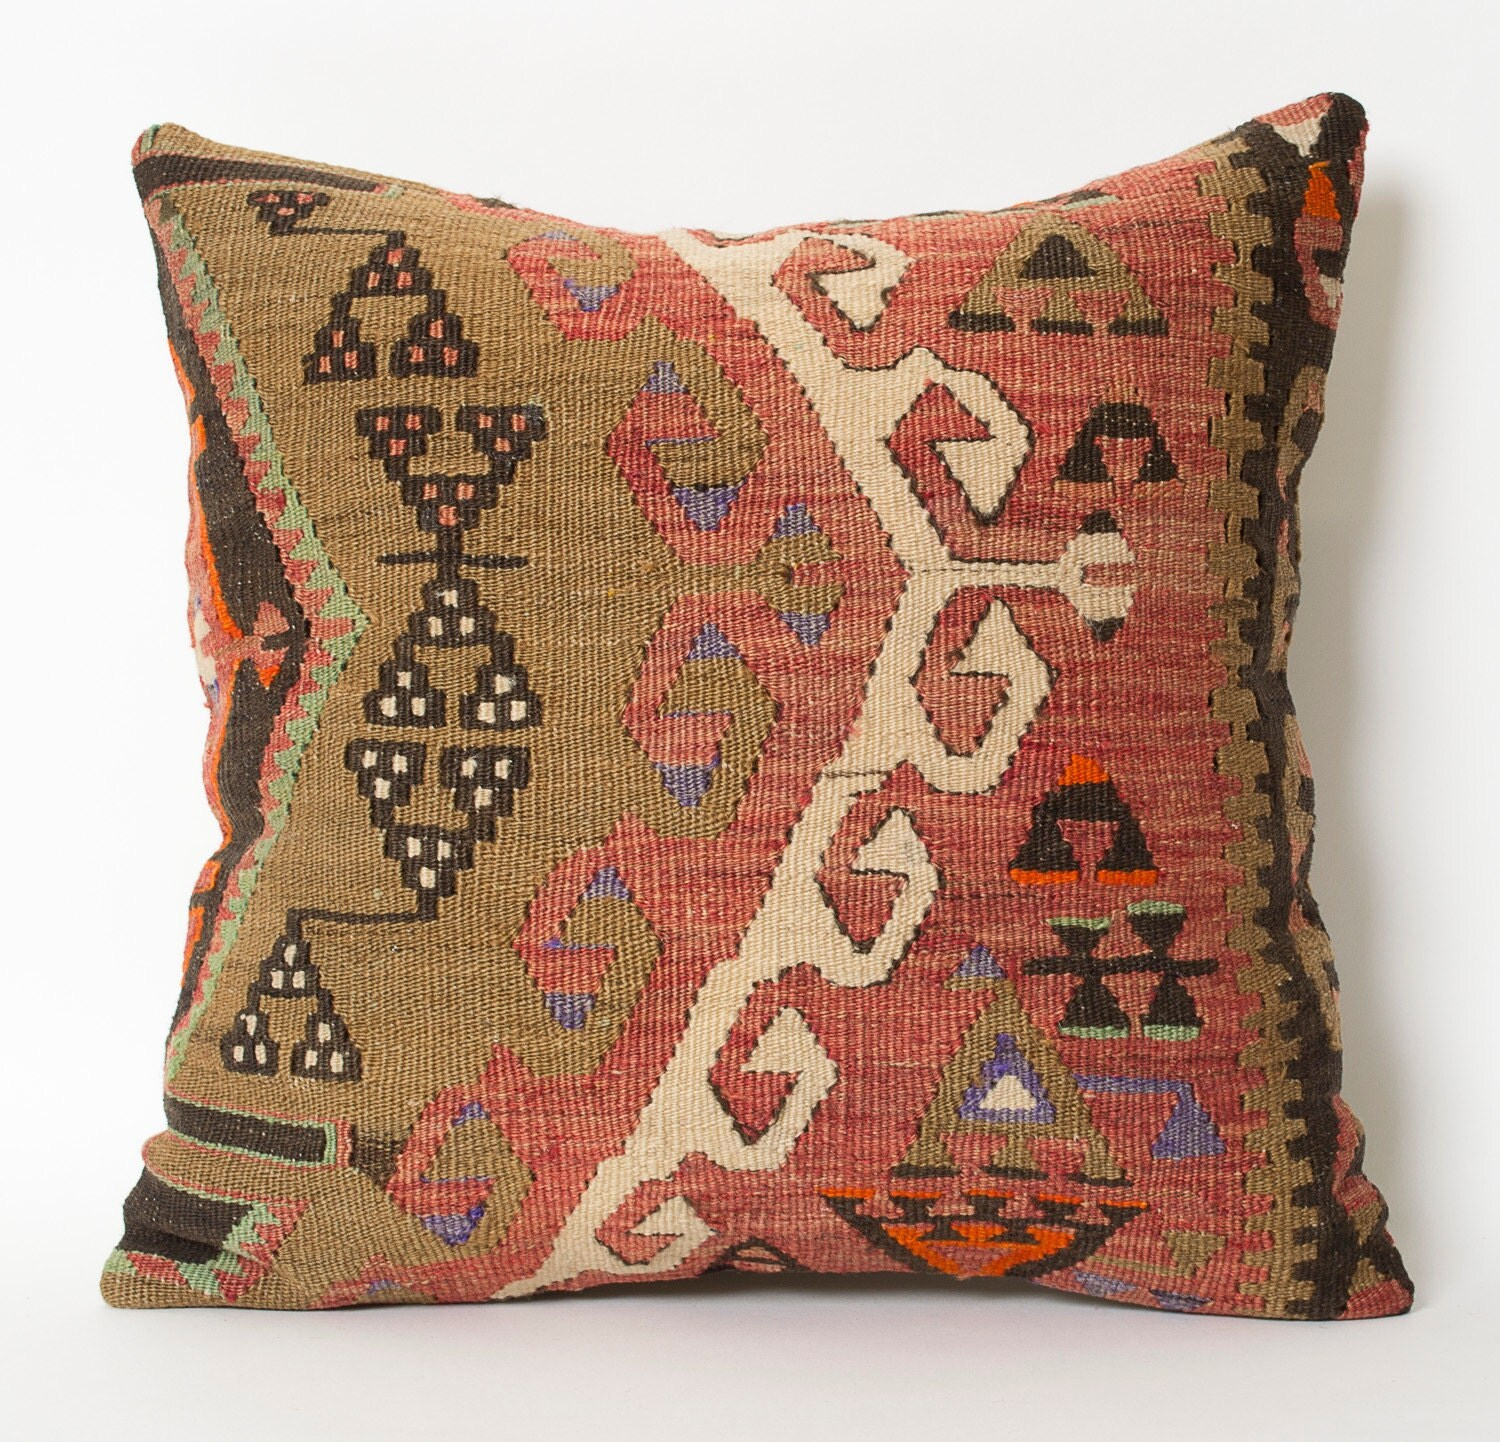 Decorative Pillows Kilim : couch pillow pillow designer pillow 16x16 pillow cover